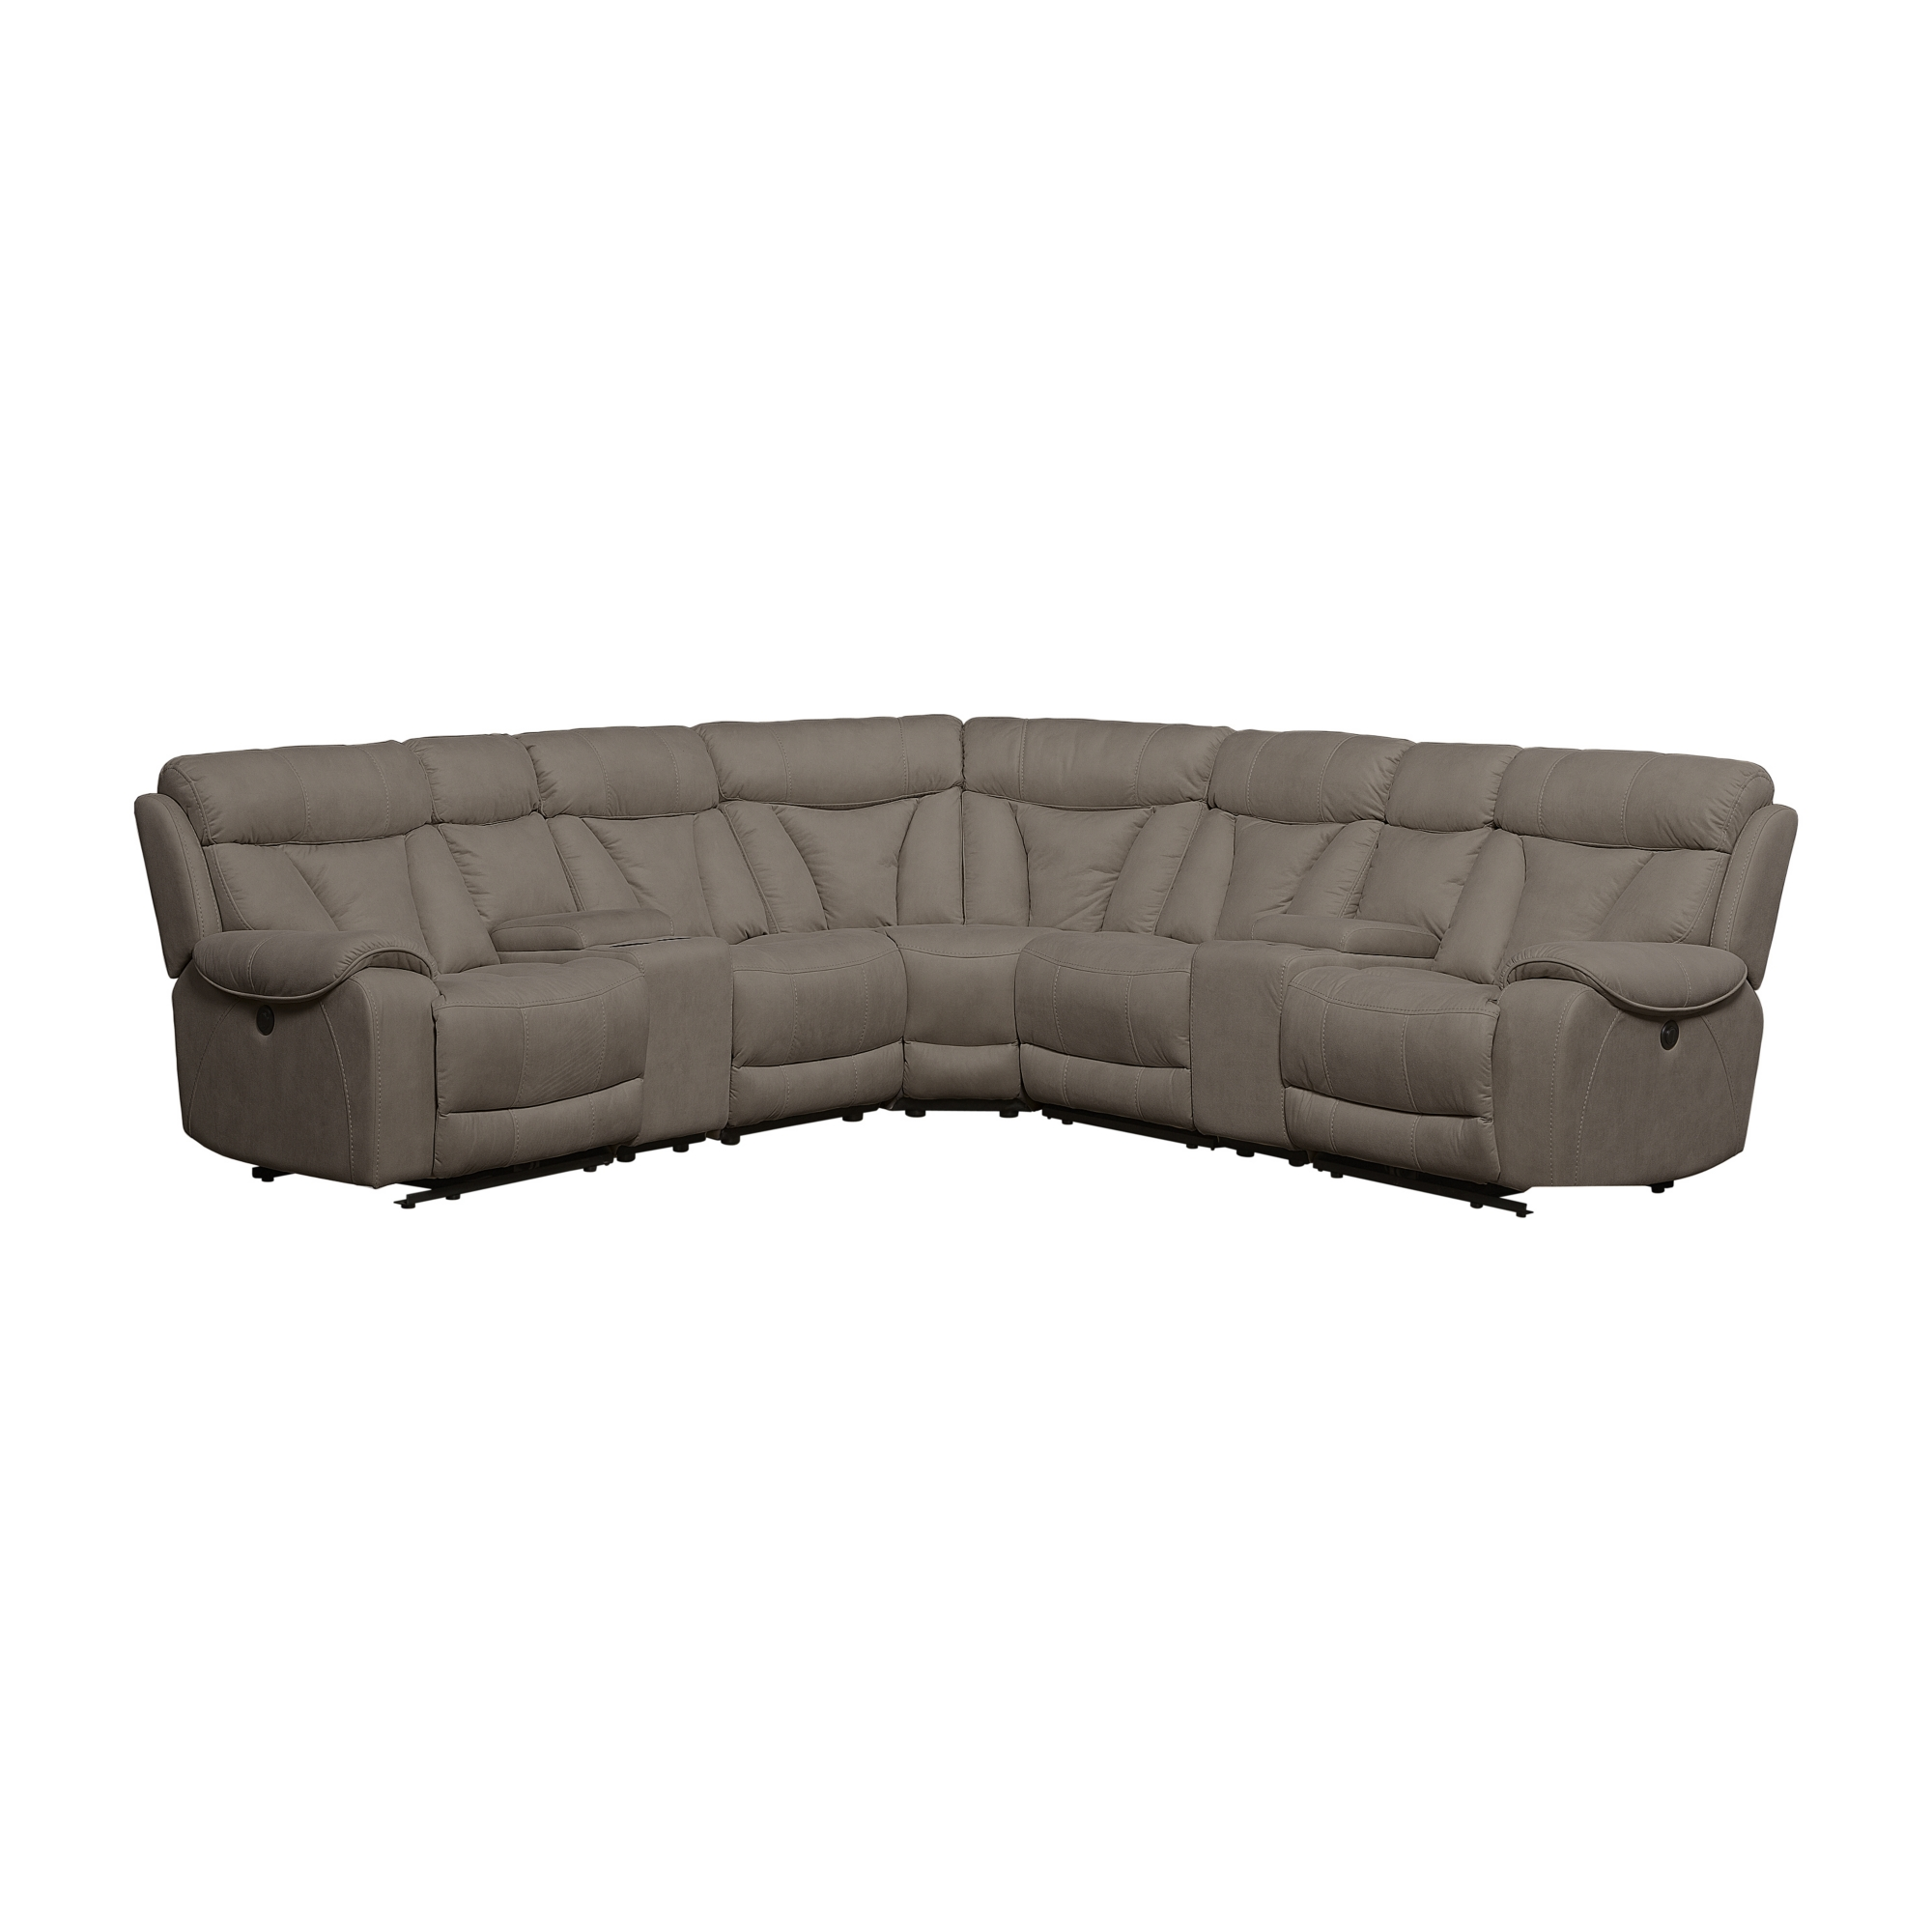 Home Theater Seating With Sofa Bed